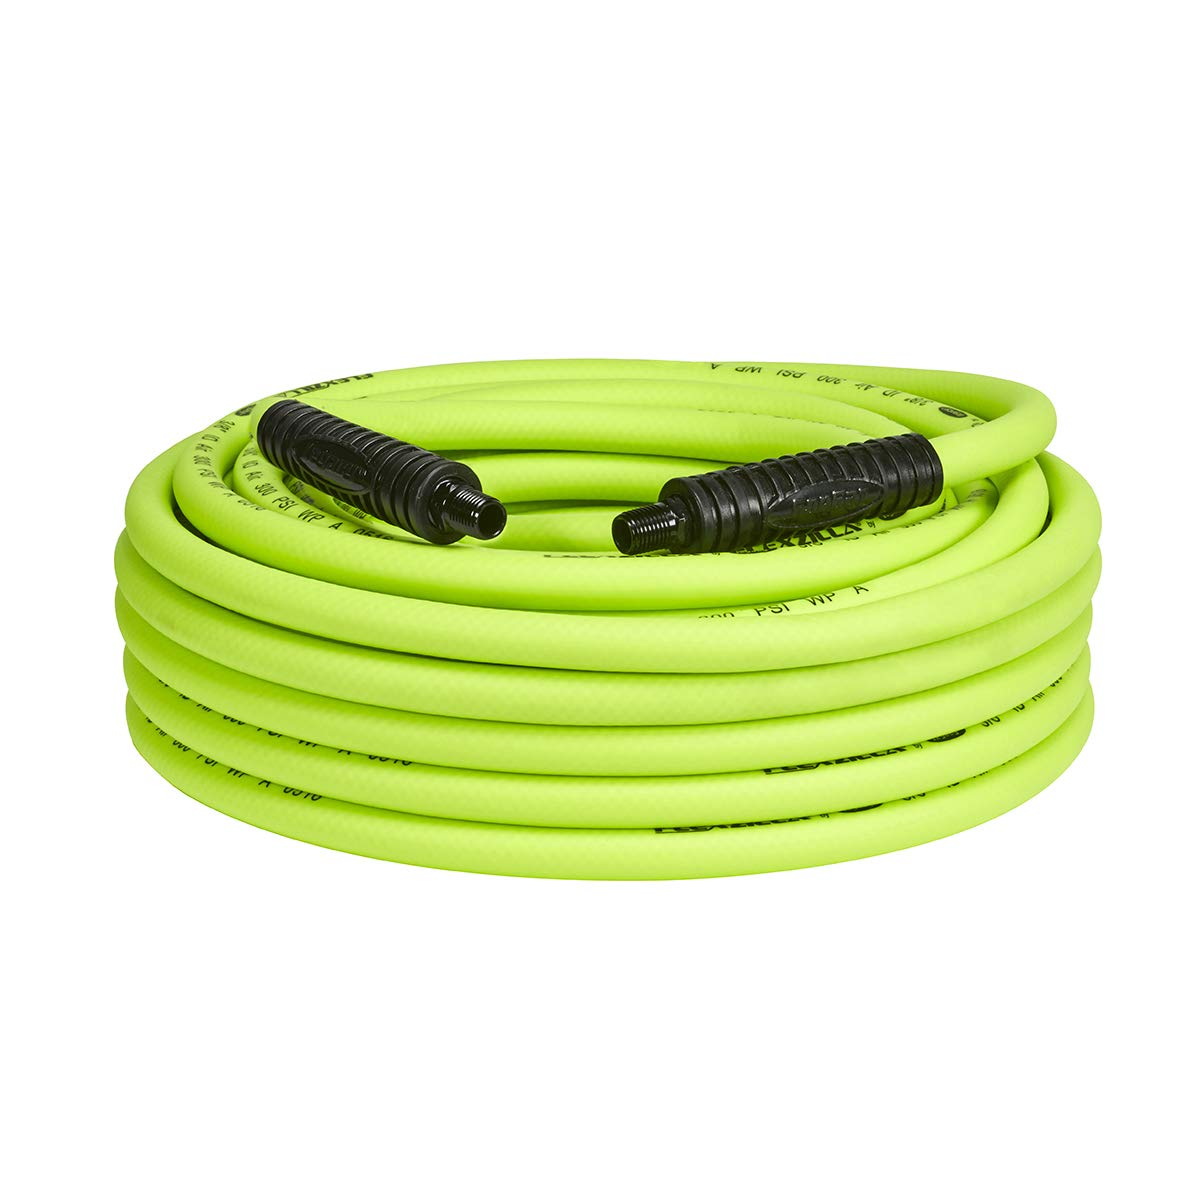 Flexzilla hose for home use